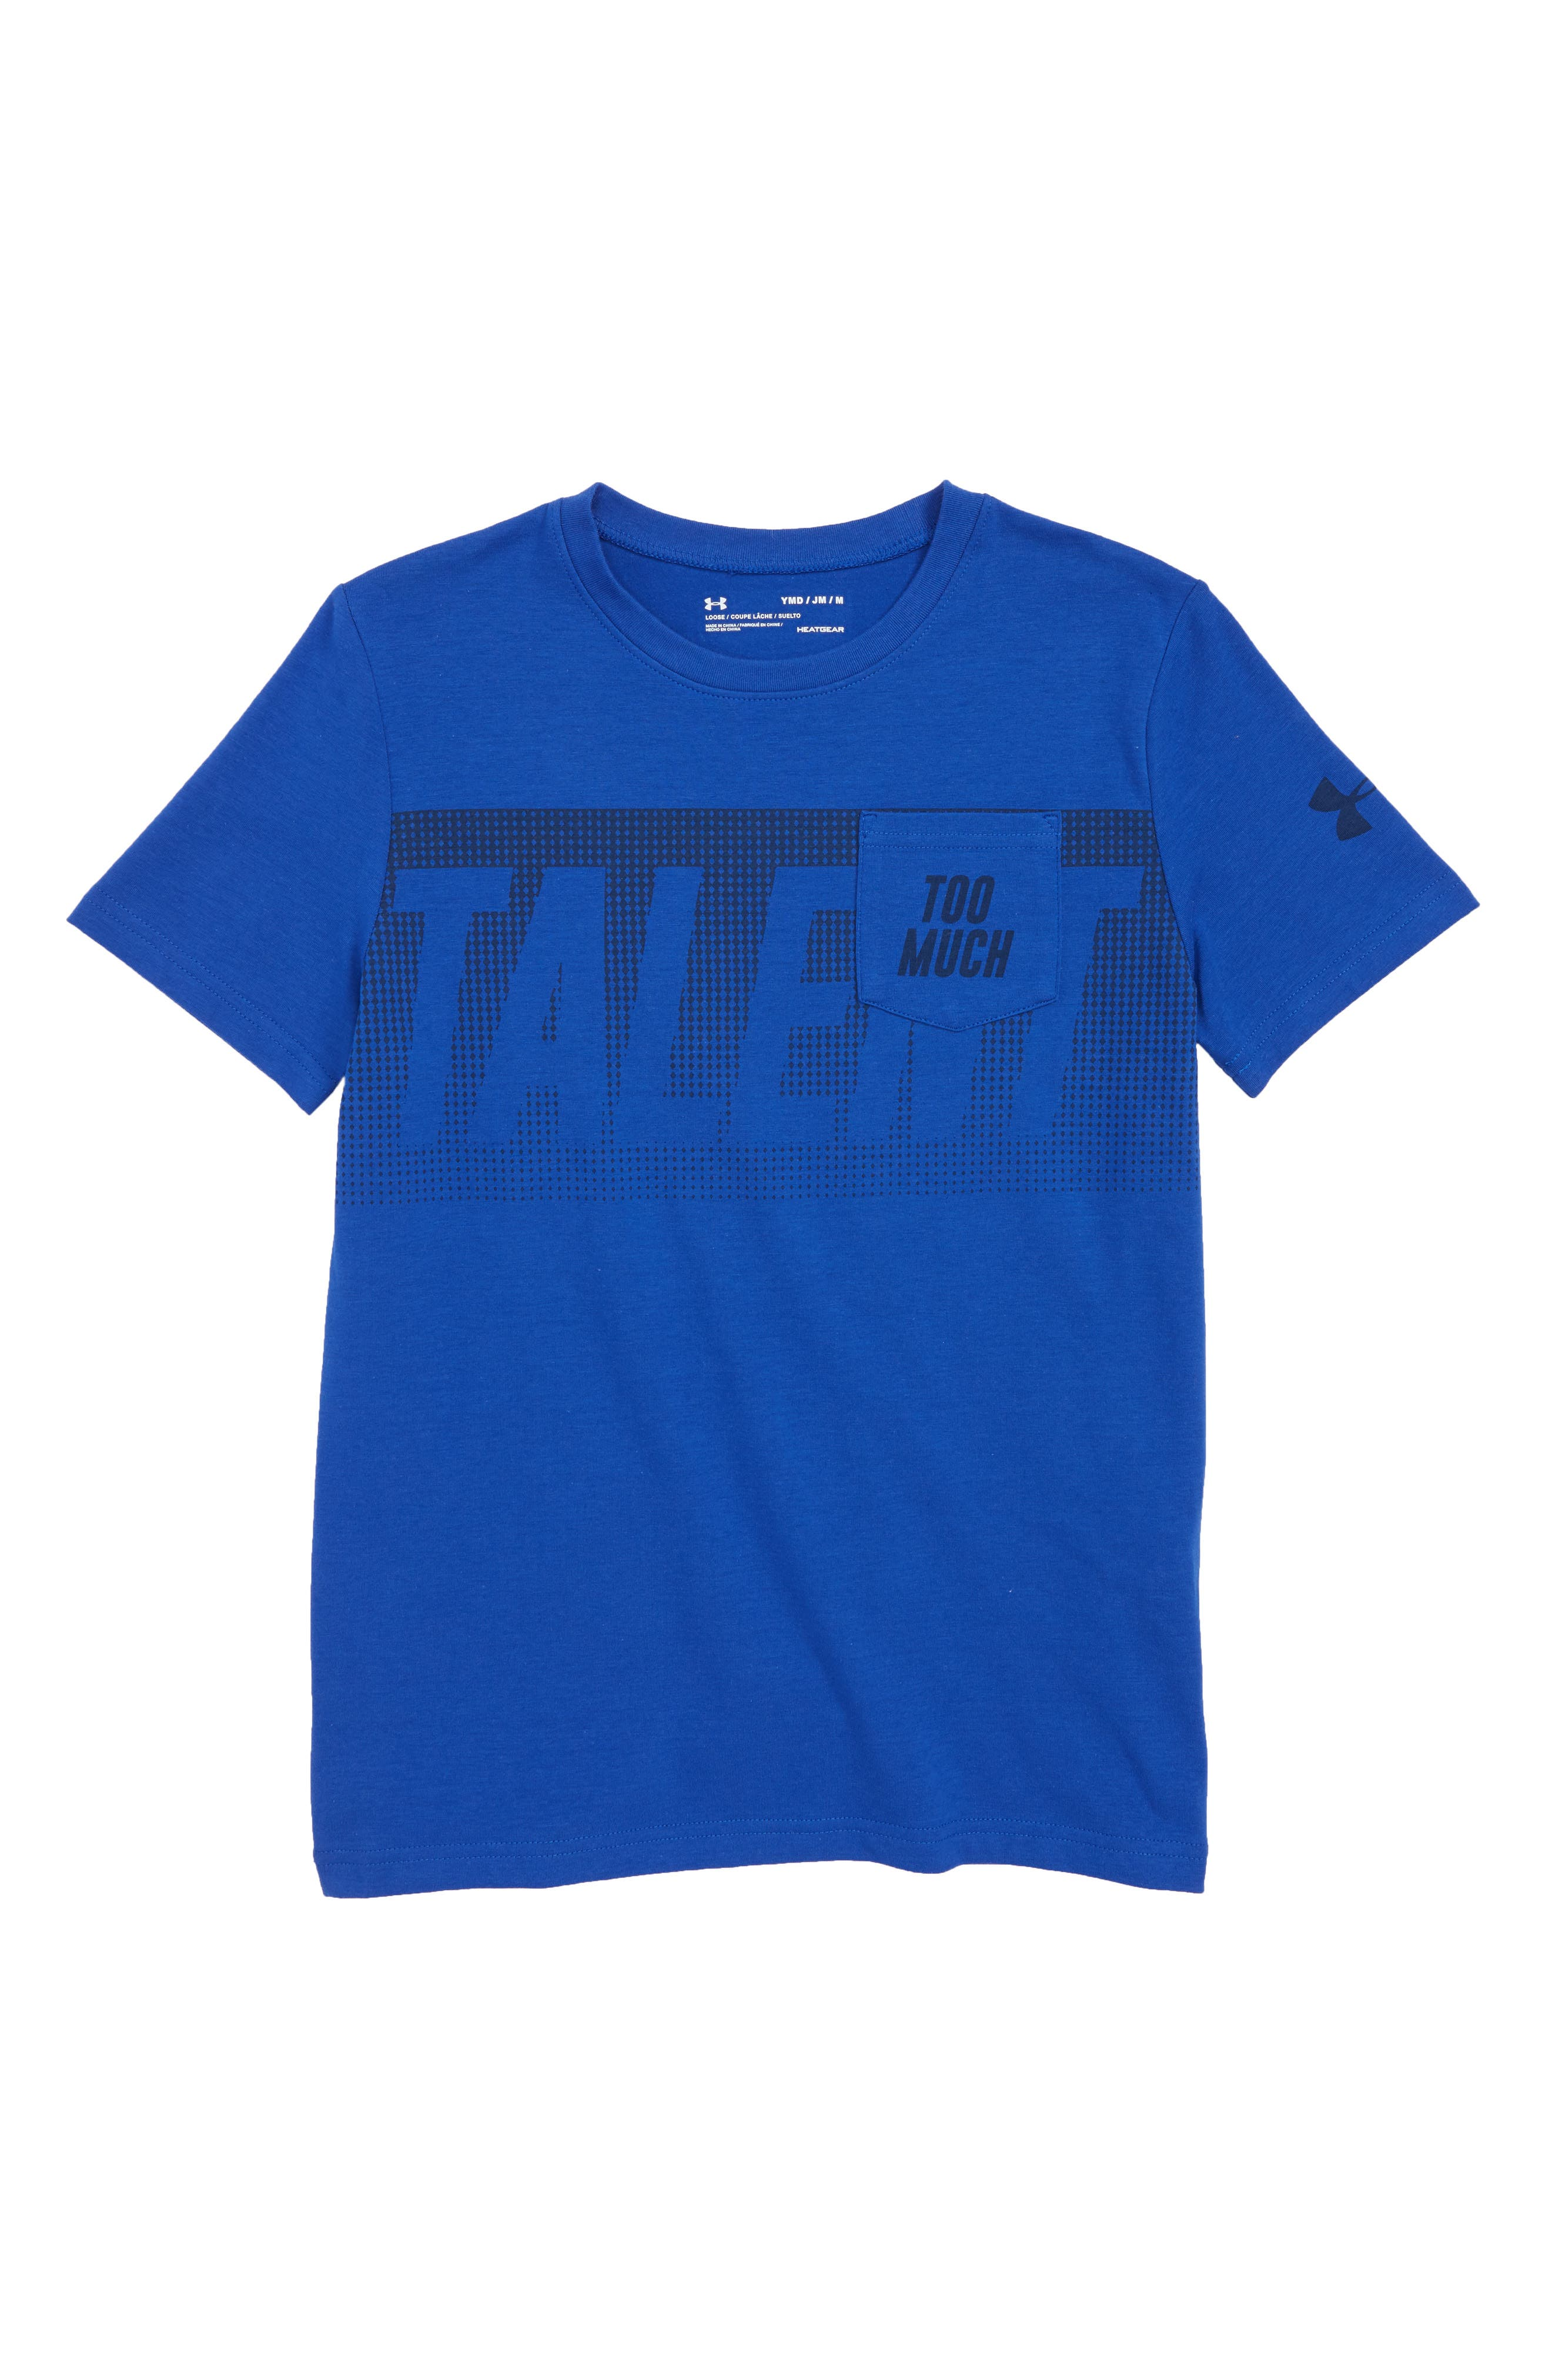 Too Much Talent T-Shirt,                         Main,                         color, Royal/ Academy